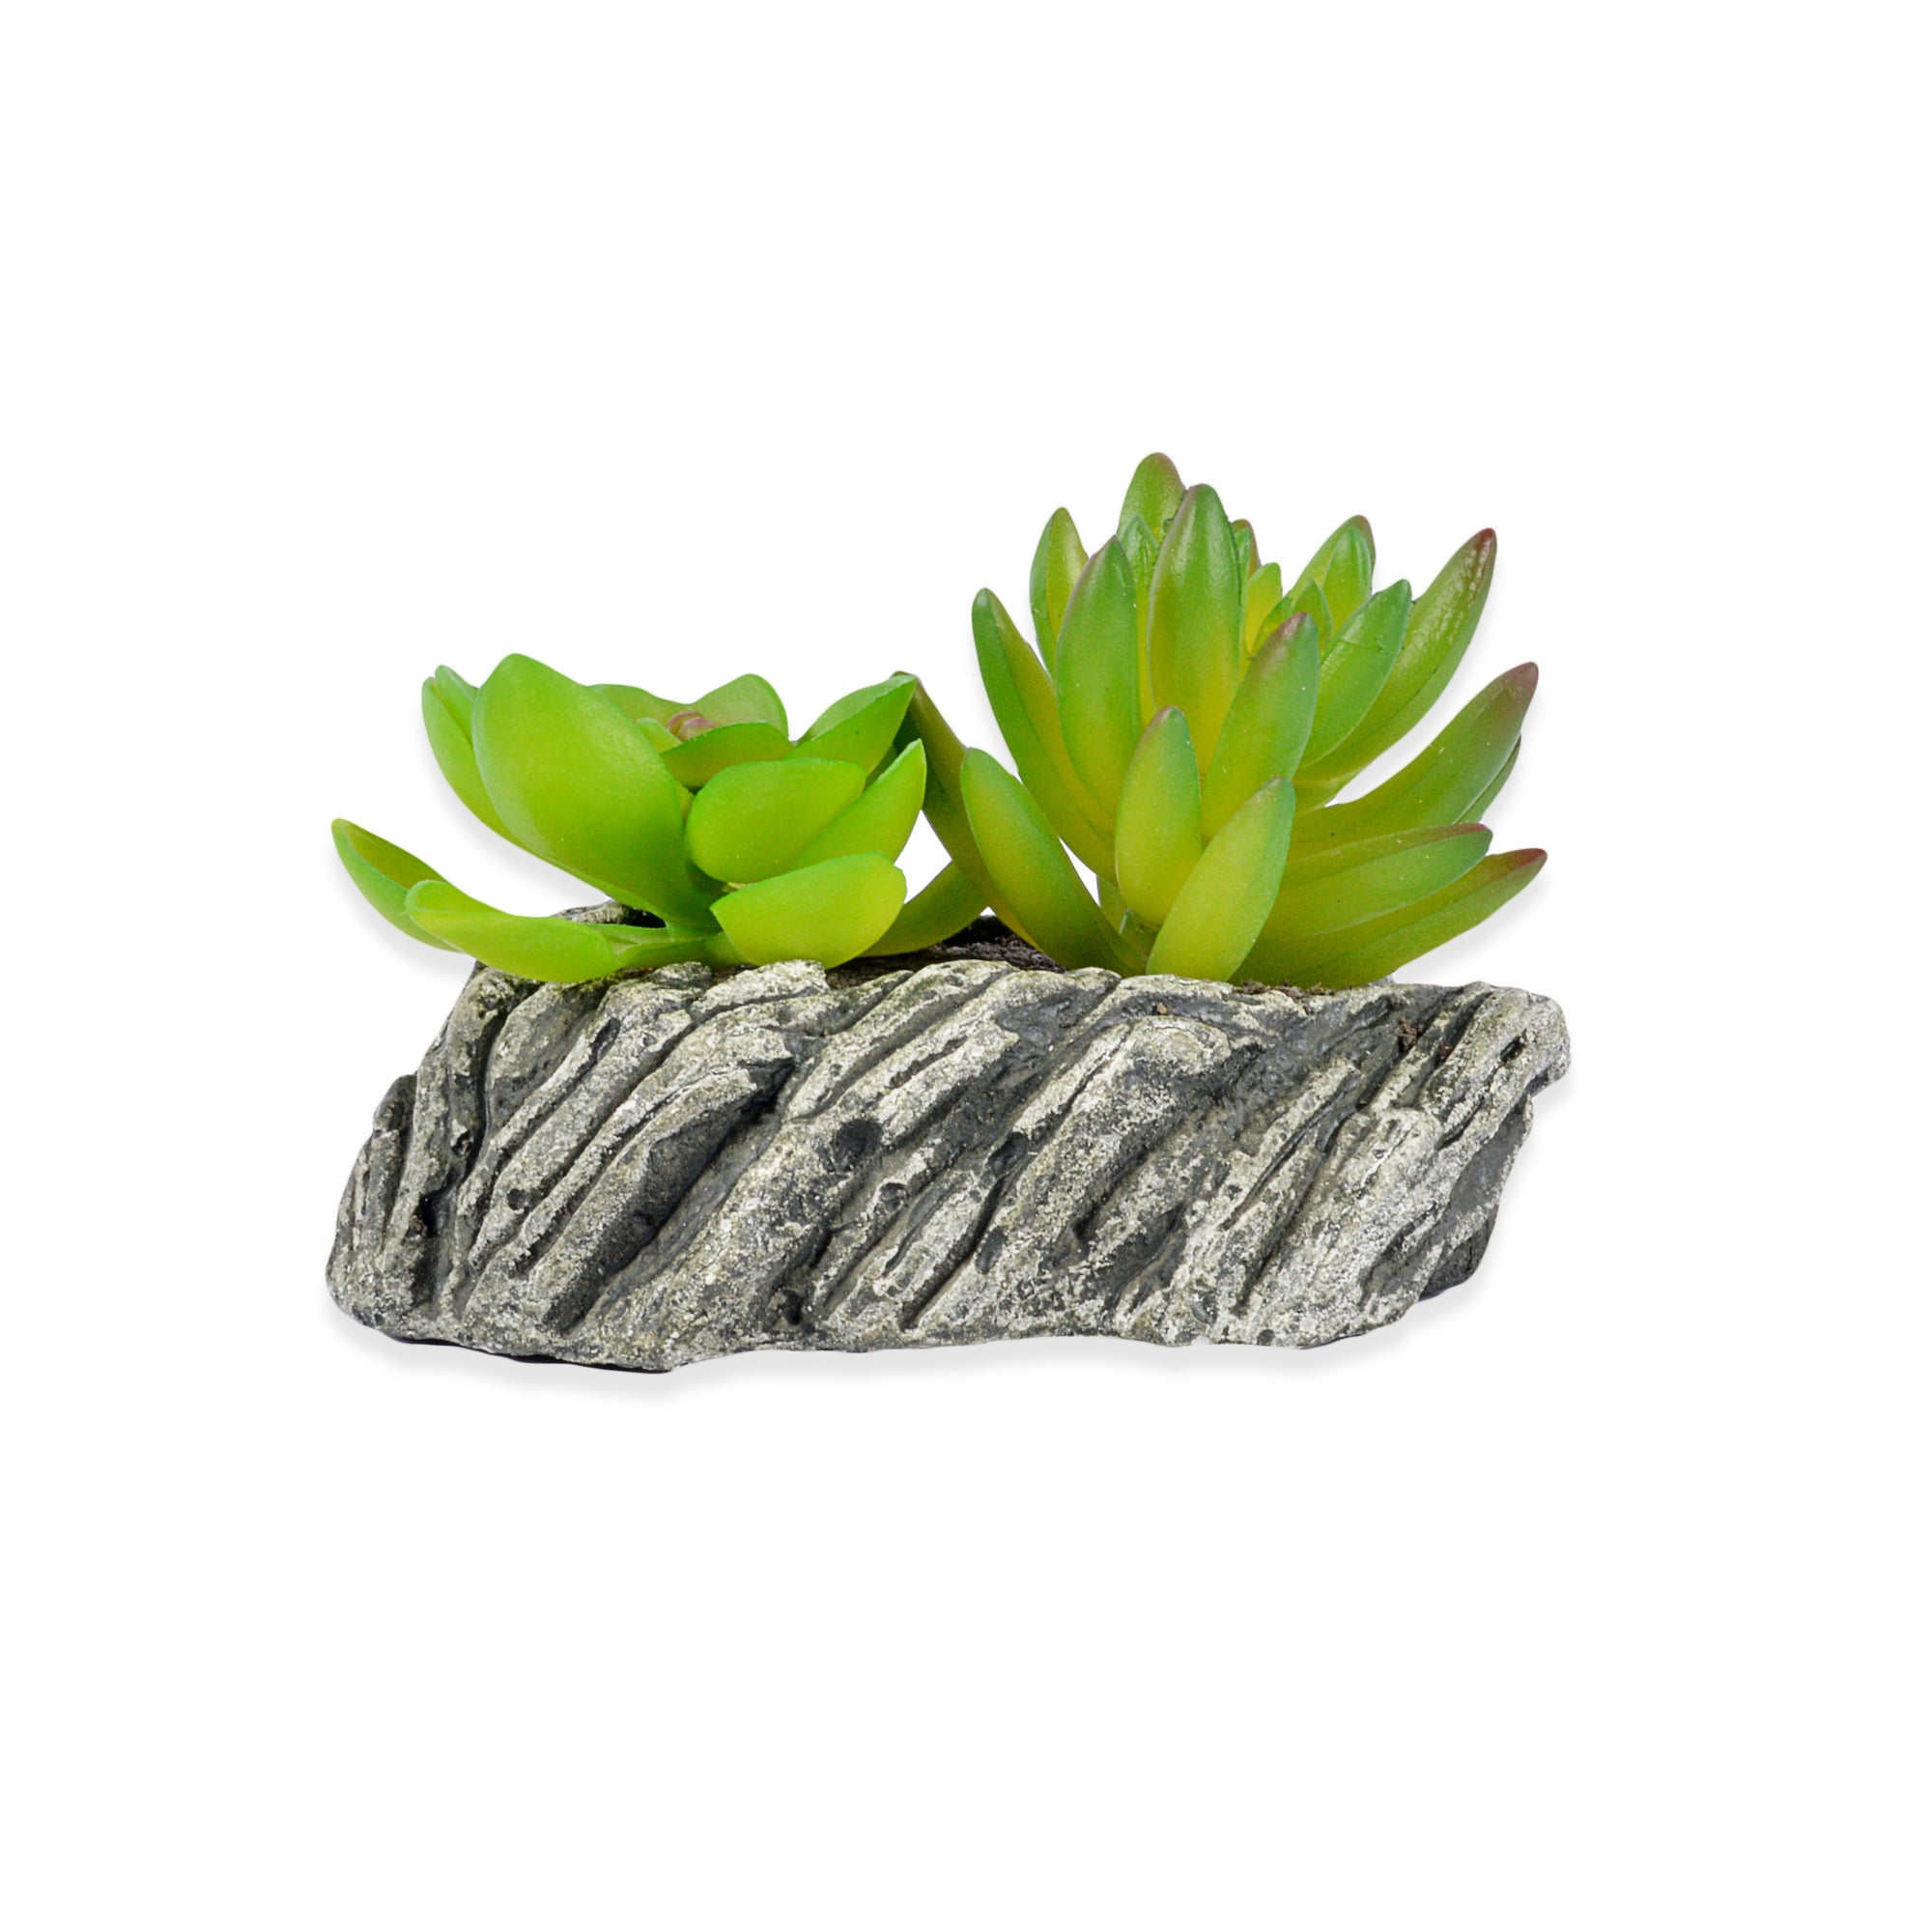 Decorative Pot planter with Ceramic Finish